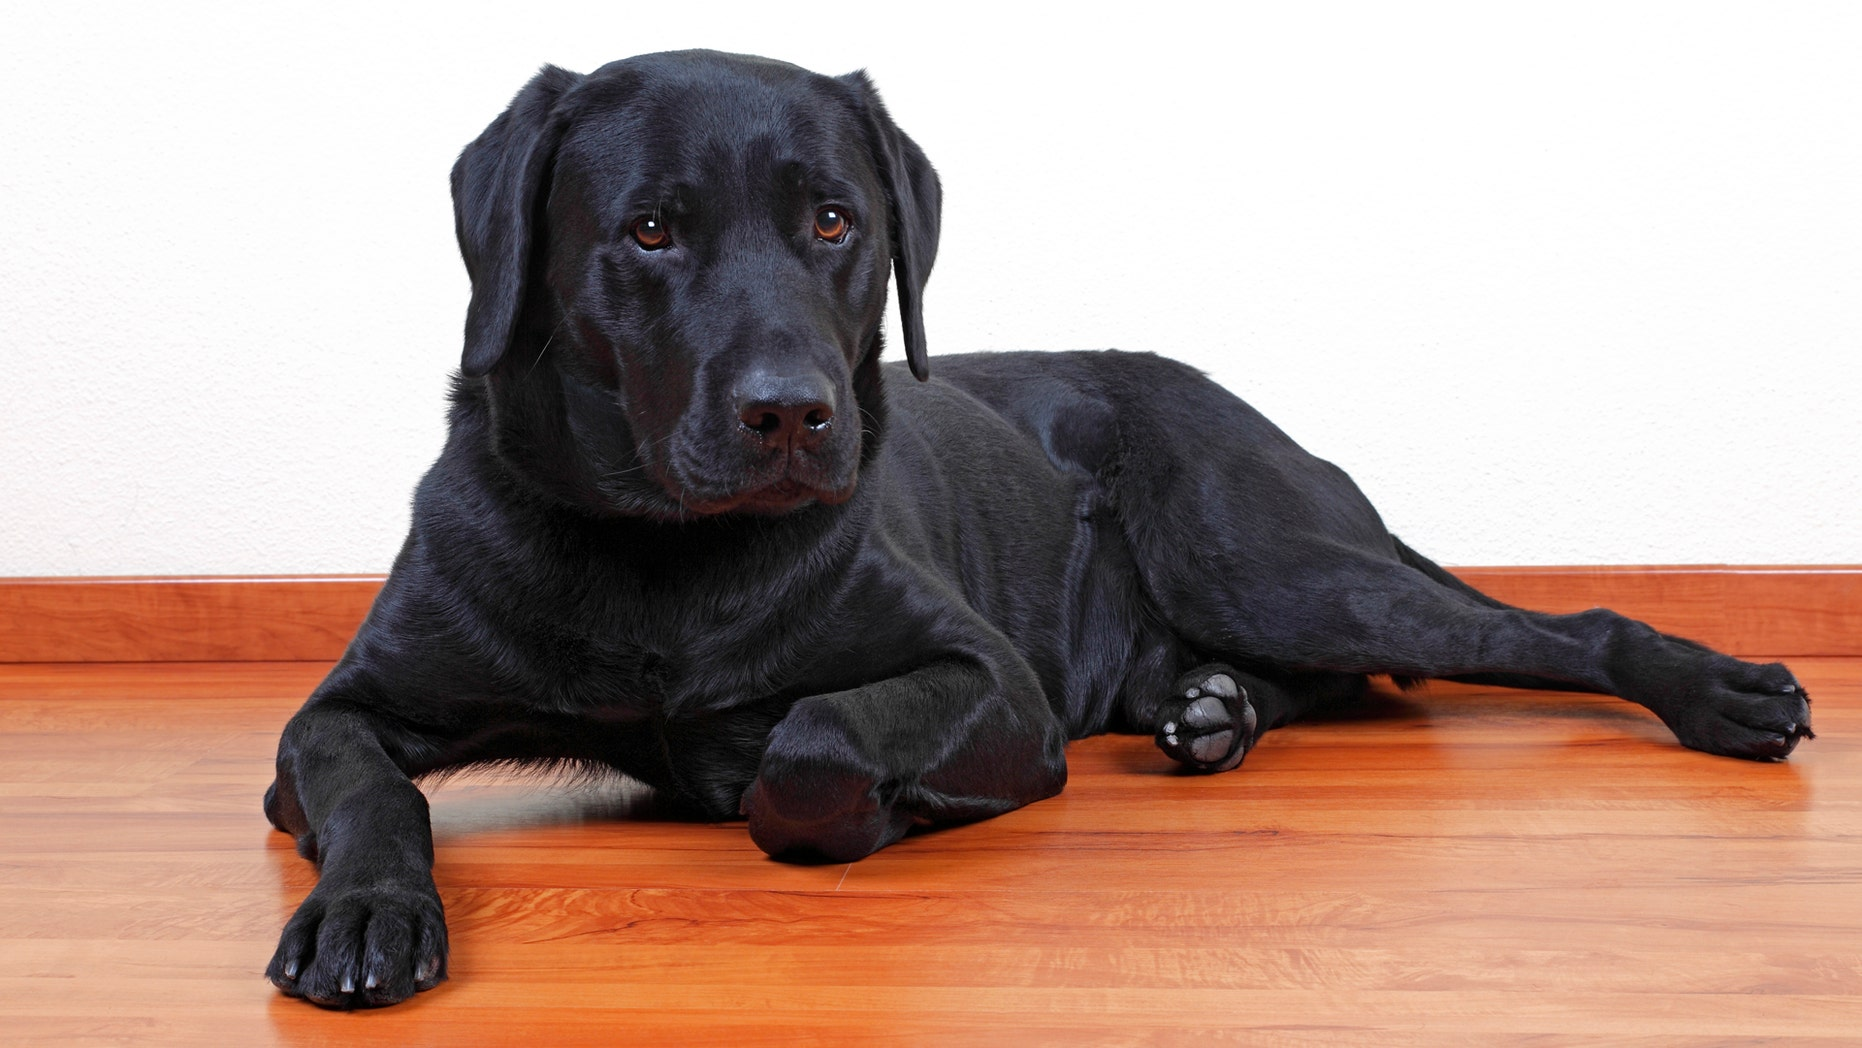 File photo - black Labrador Retriever dog.